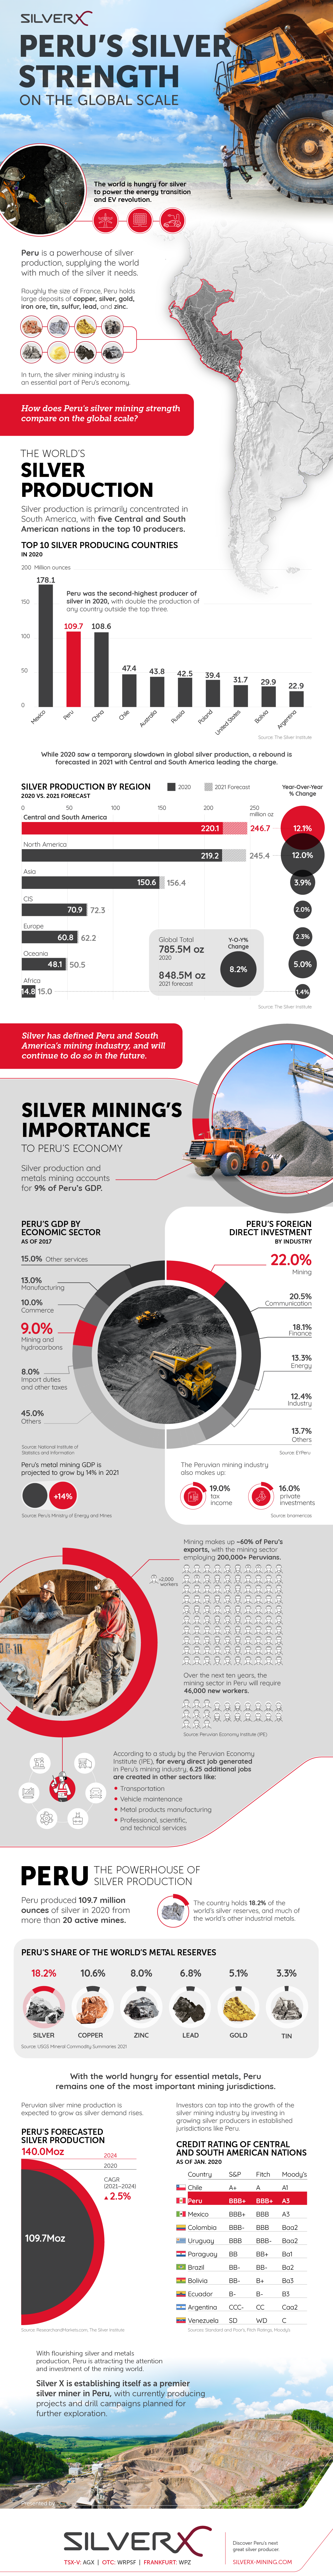 Peru's Silver Mining Strength Infographic